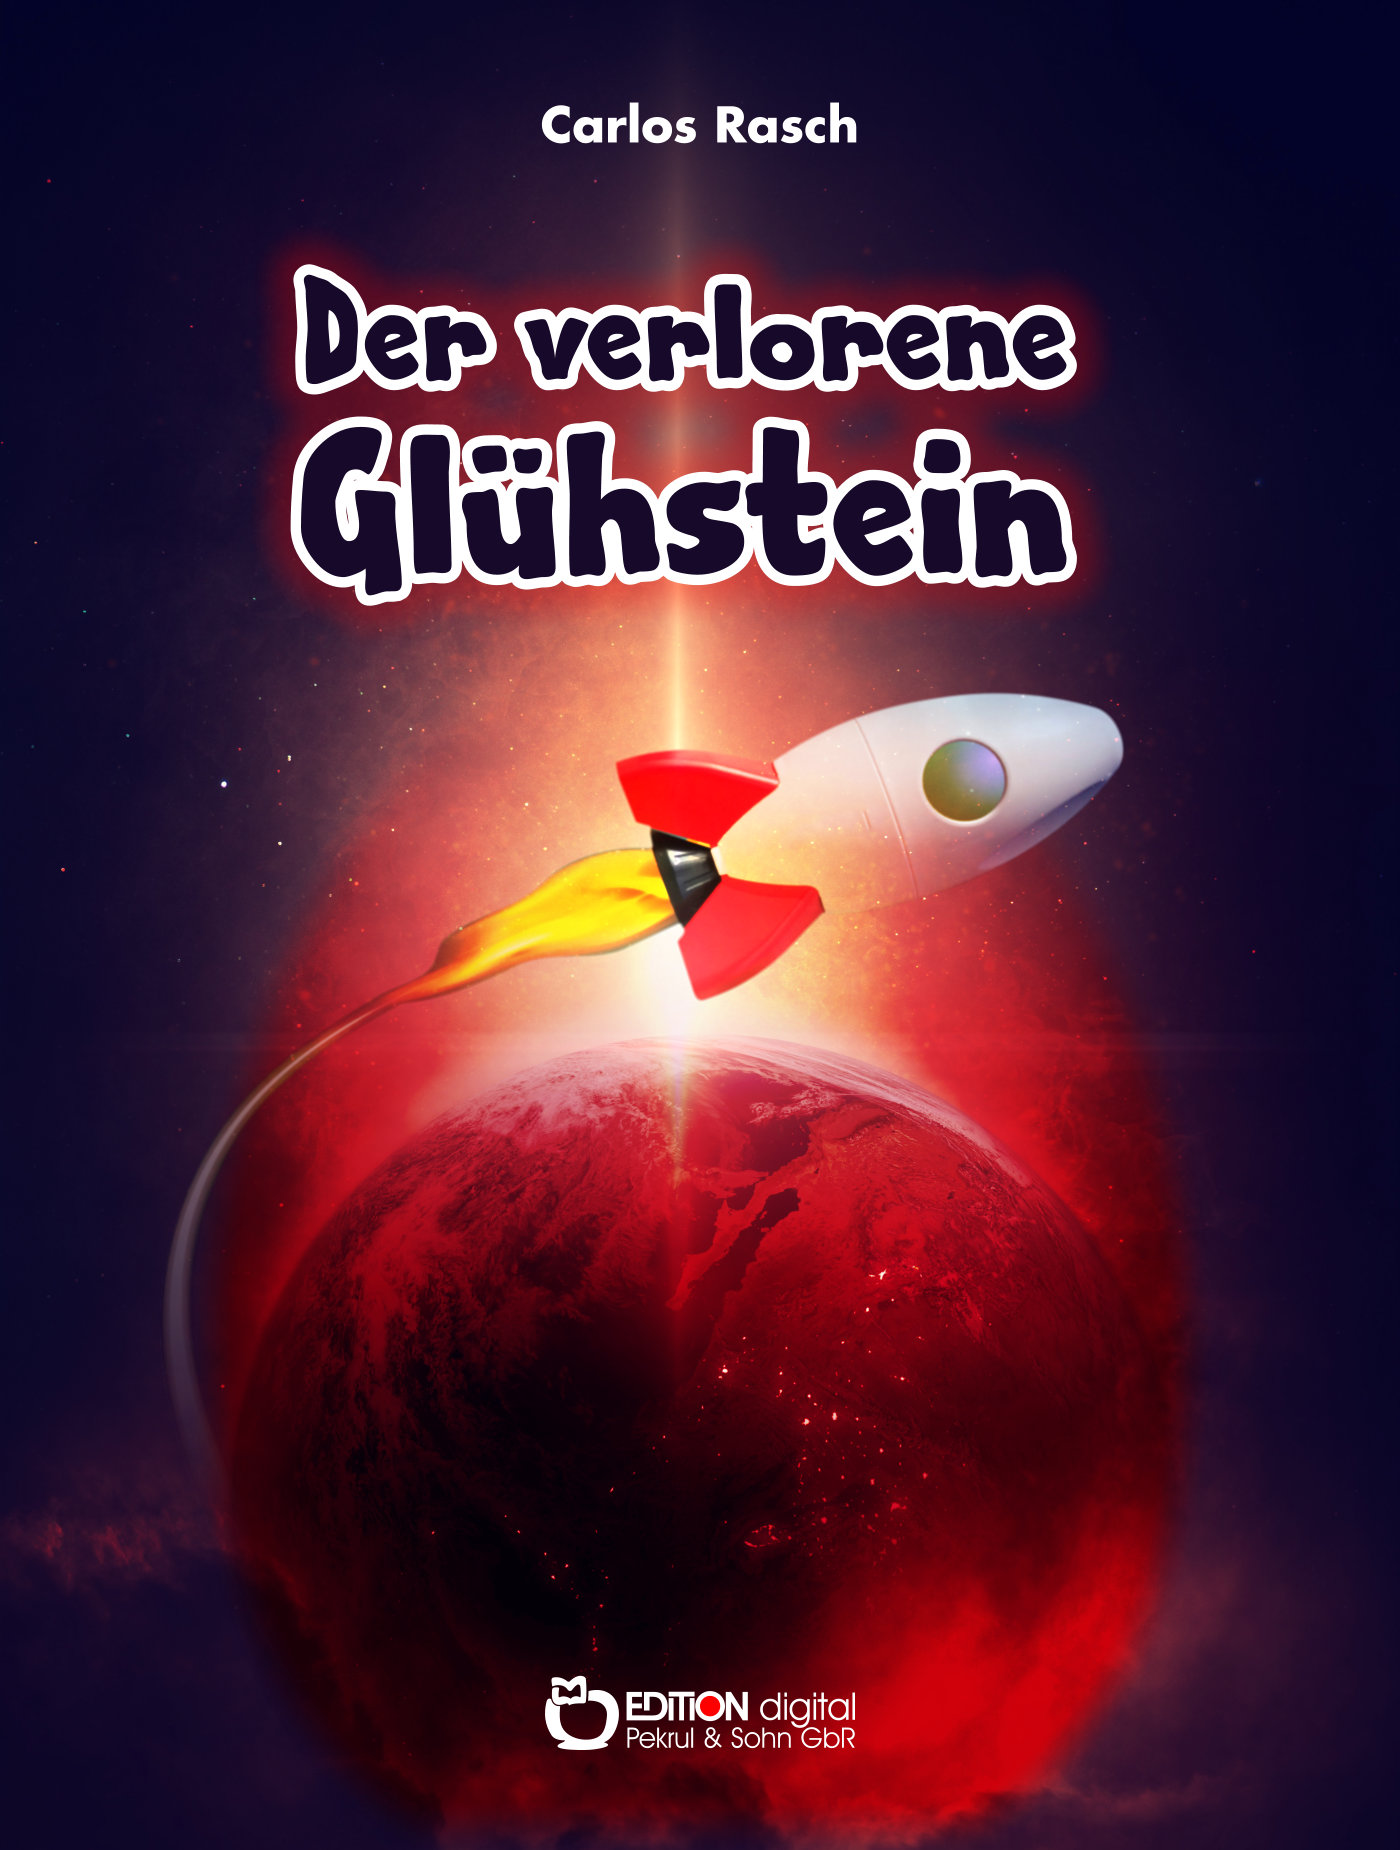 Der verlorene Glühstein von Carlos Rasch